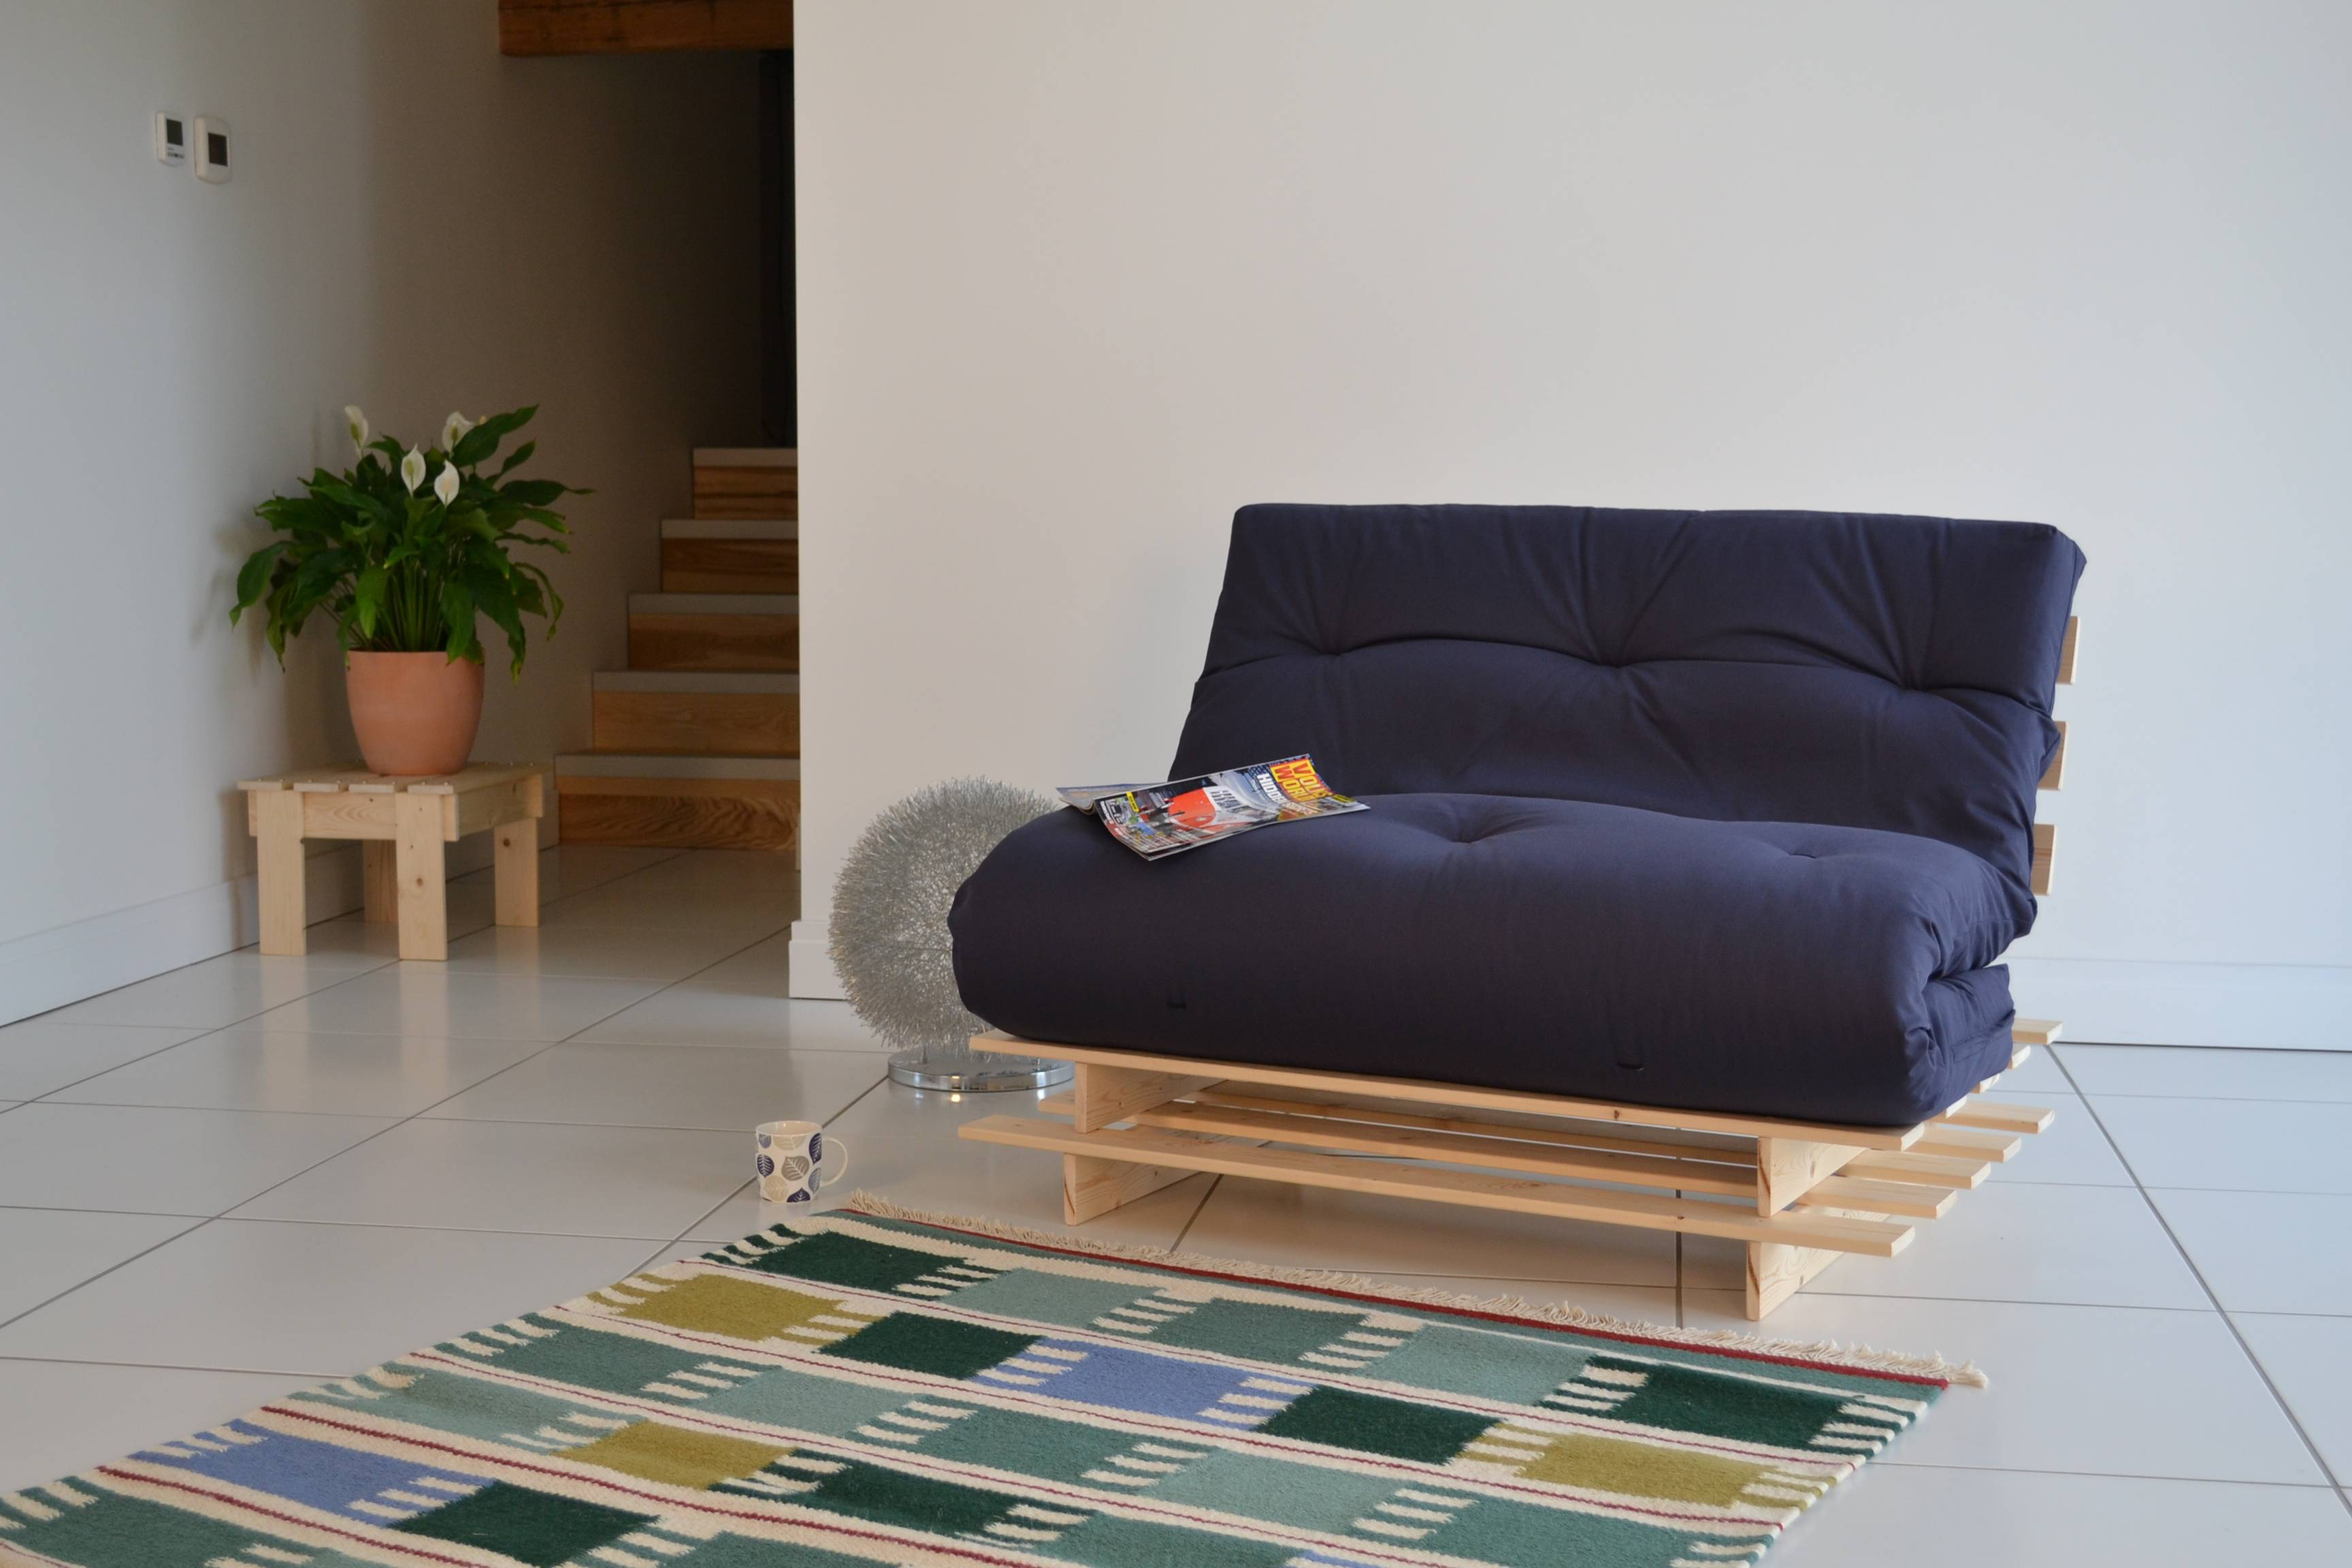 14 Surprisingly Small Futons For Small Spaces   Kaf Mobile ...